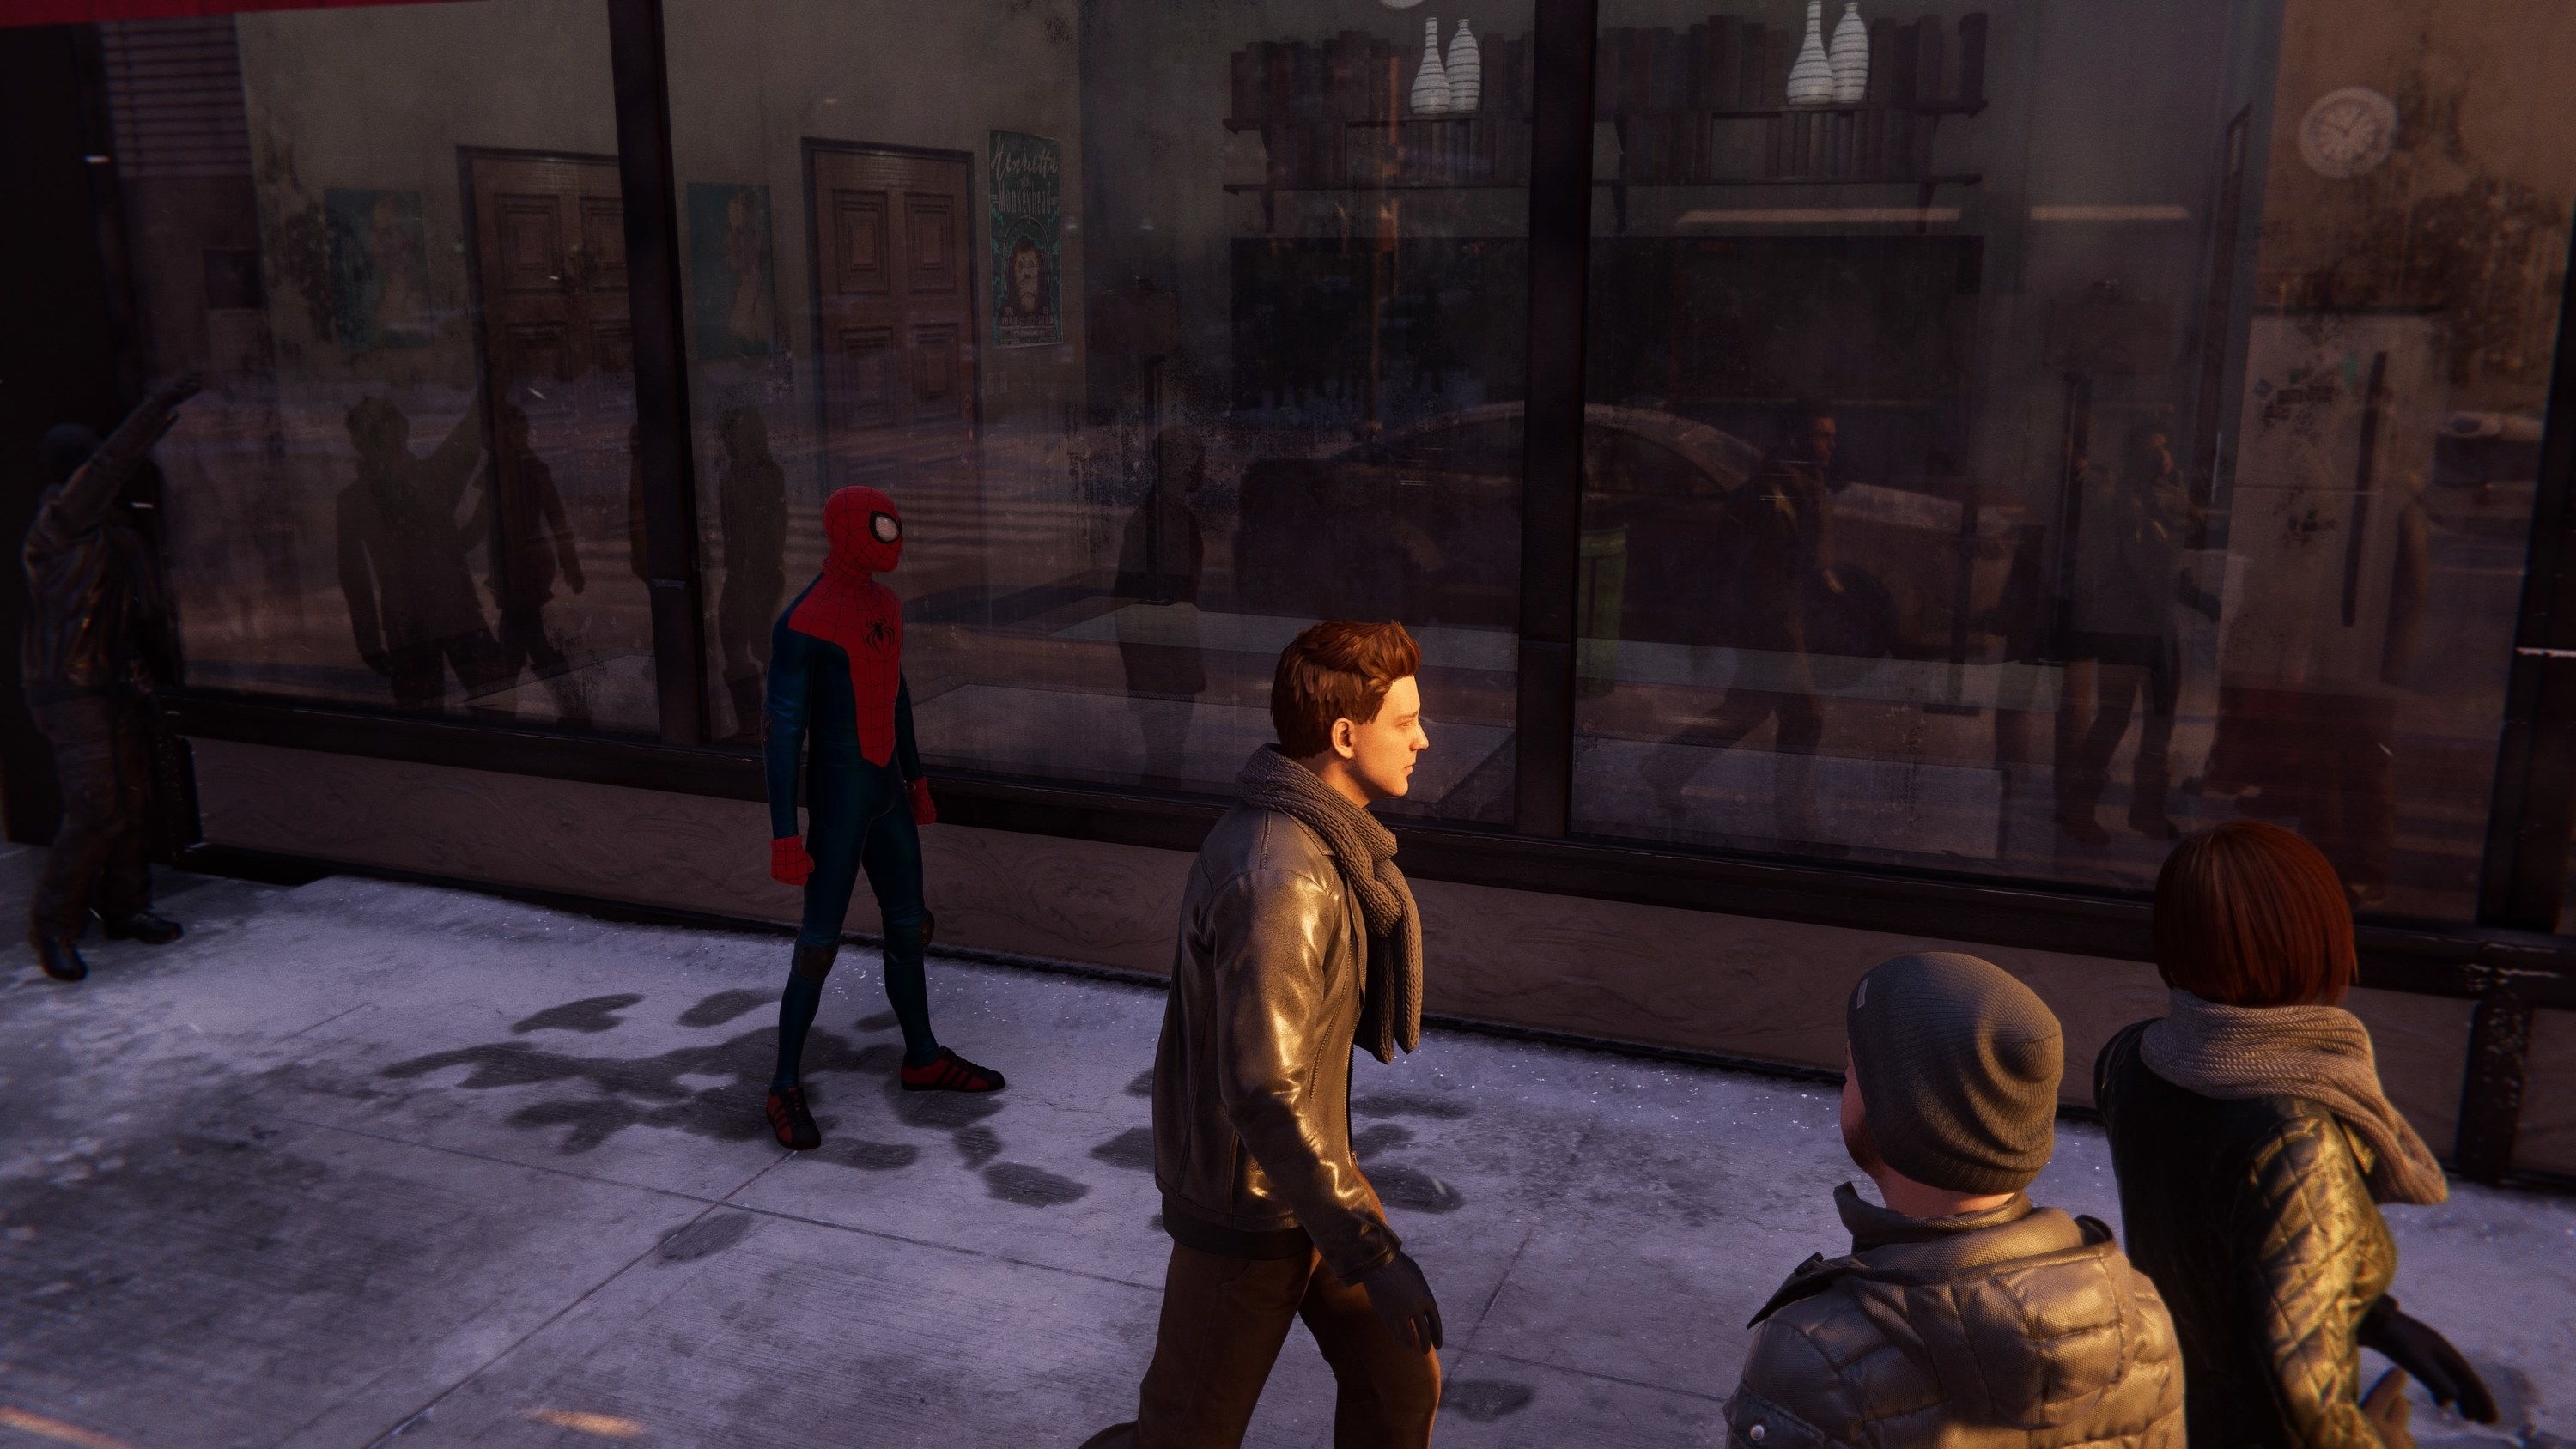 Spider-Man stands in front of a window that reflects him and people around him